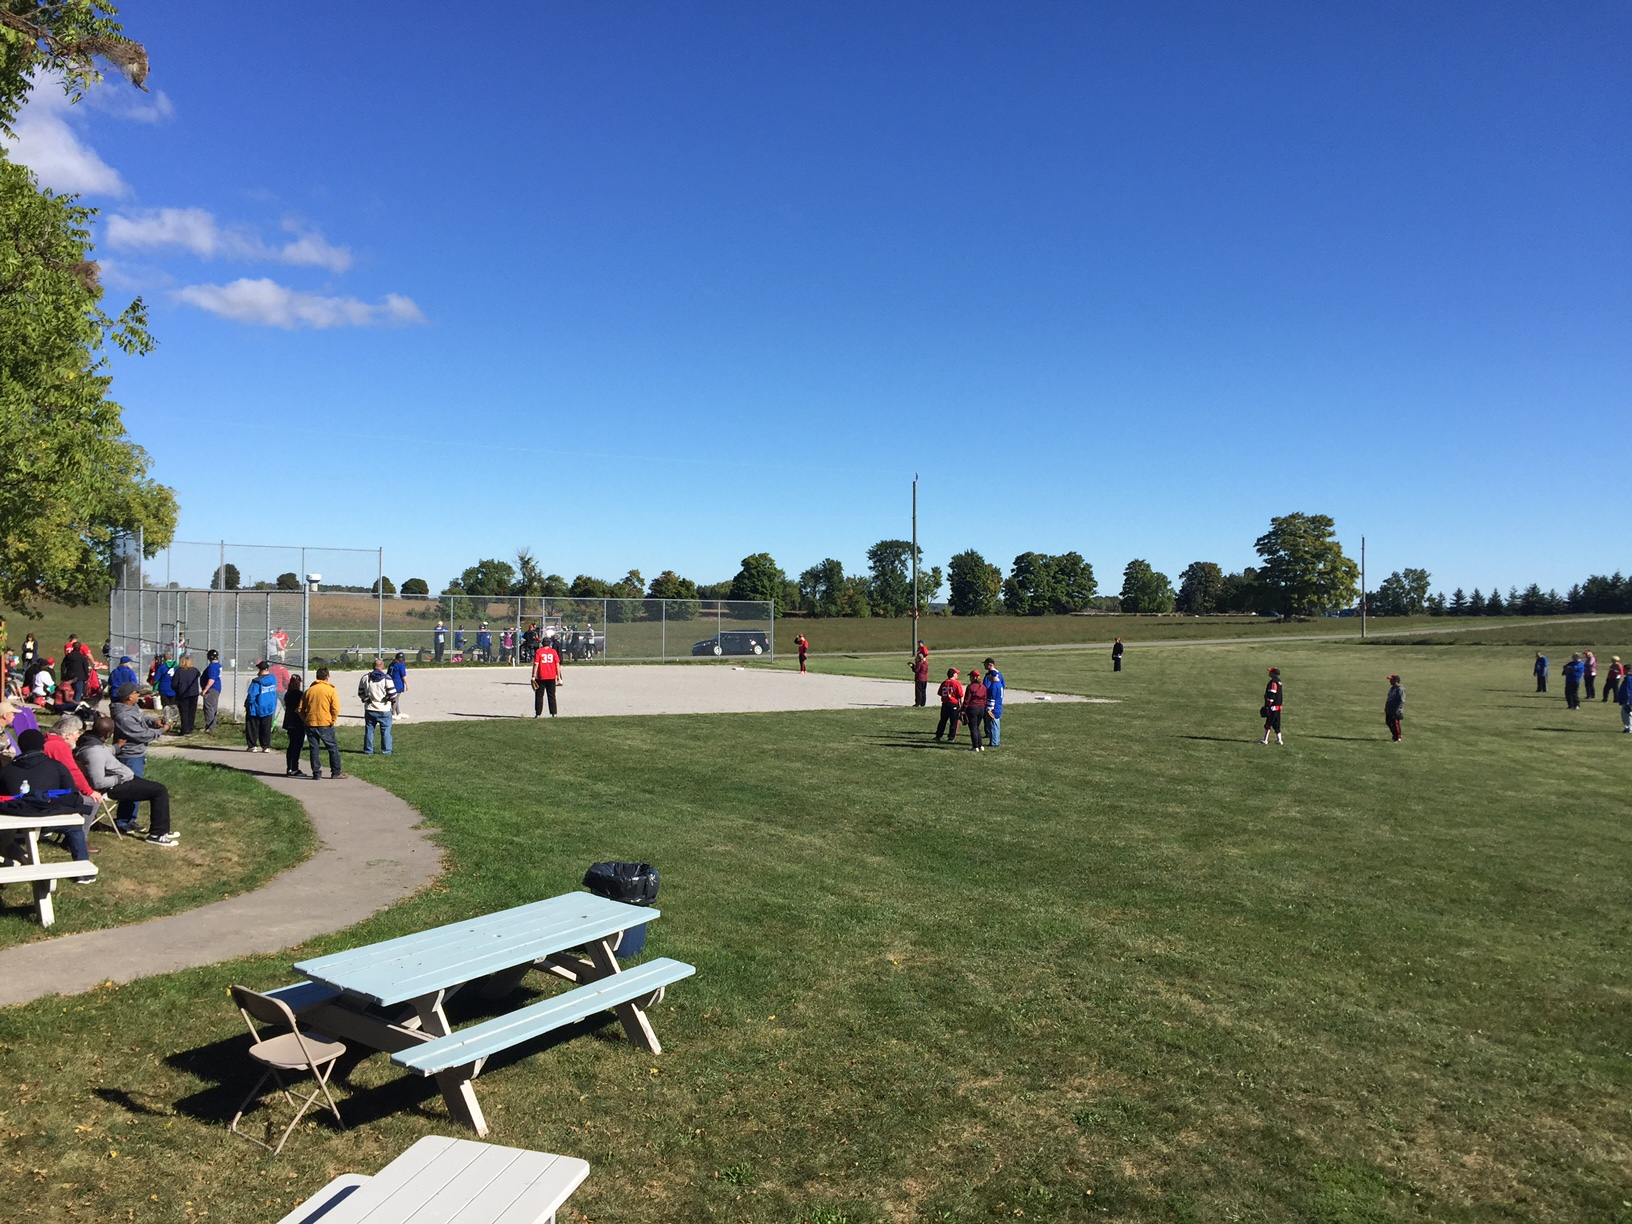 Baseball Tournament Participants ready to play